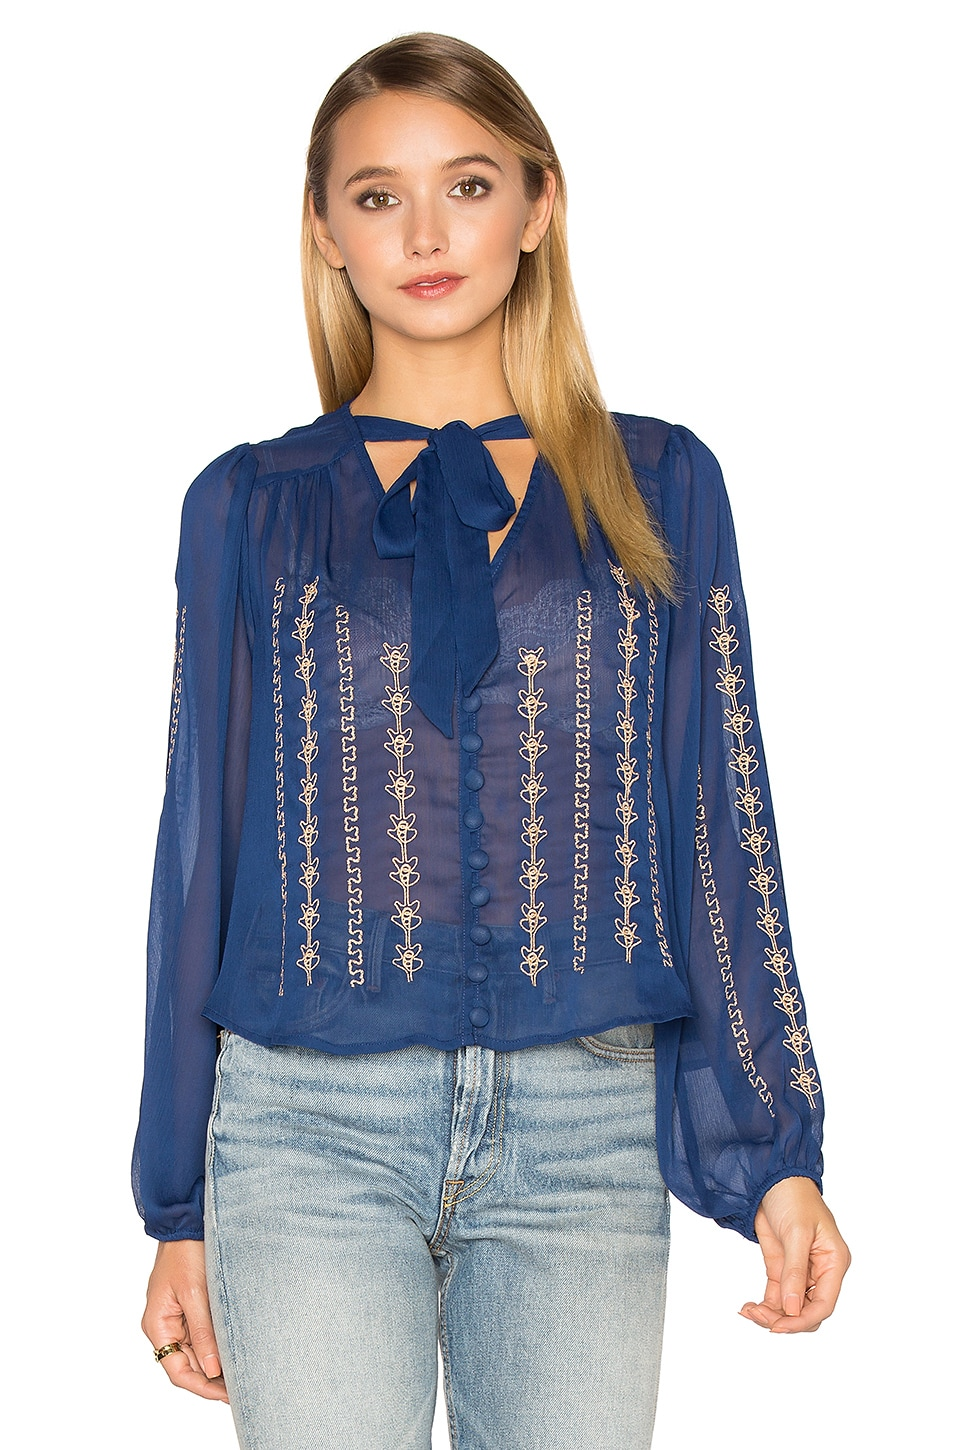 Band of Gypsies Embroidered Blouse in Royal & Gold